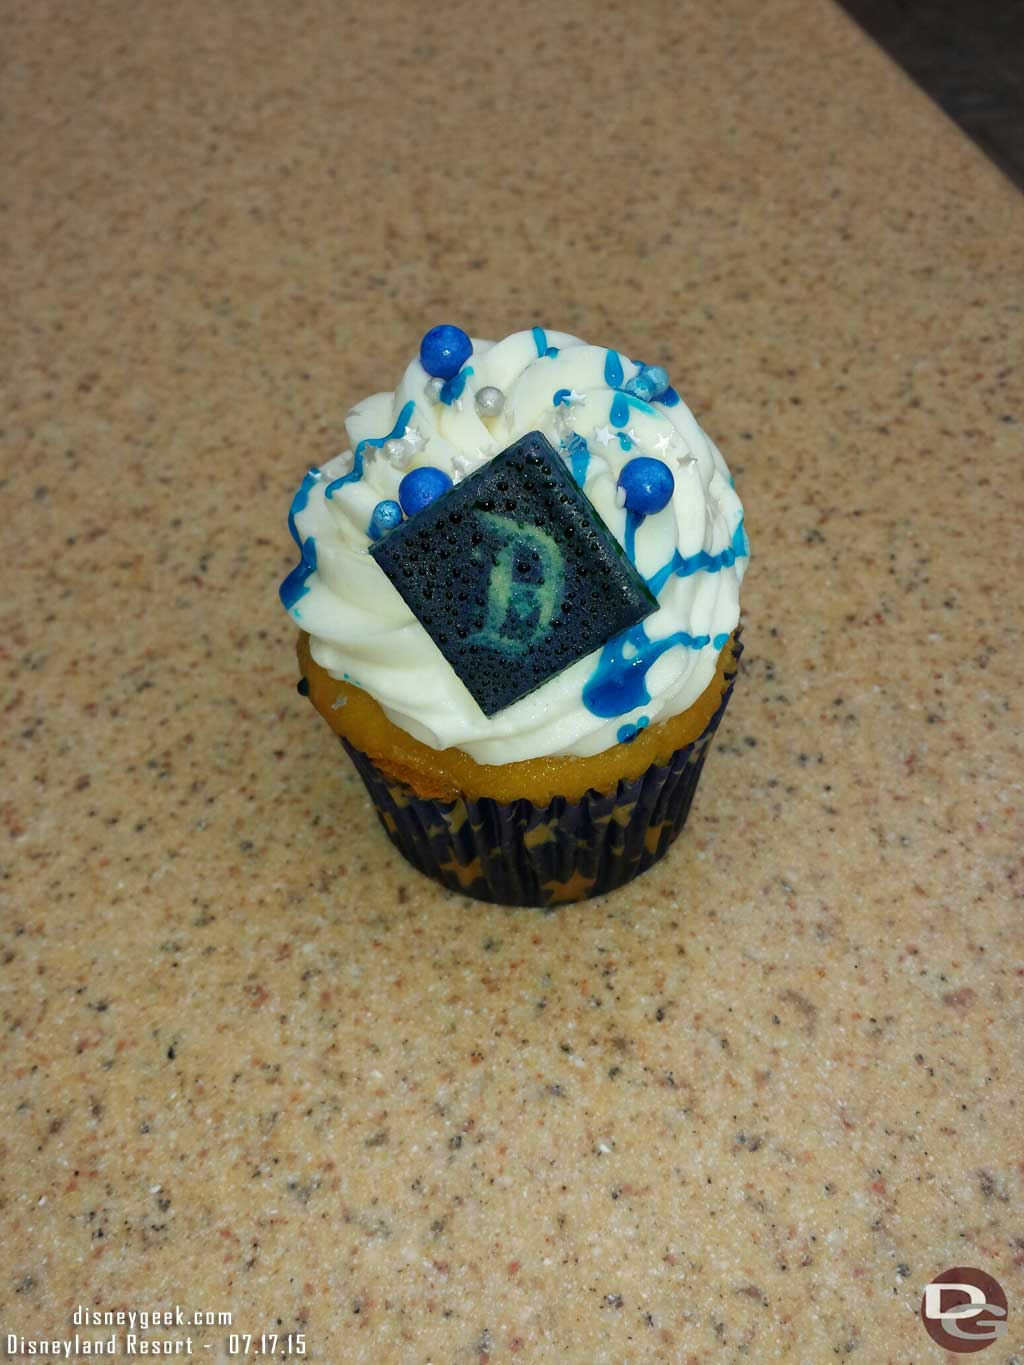 #Disneyland60 cupcake that is free for all guests this morning